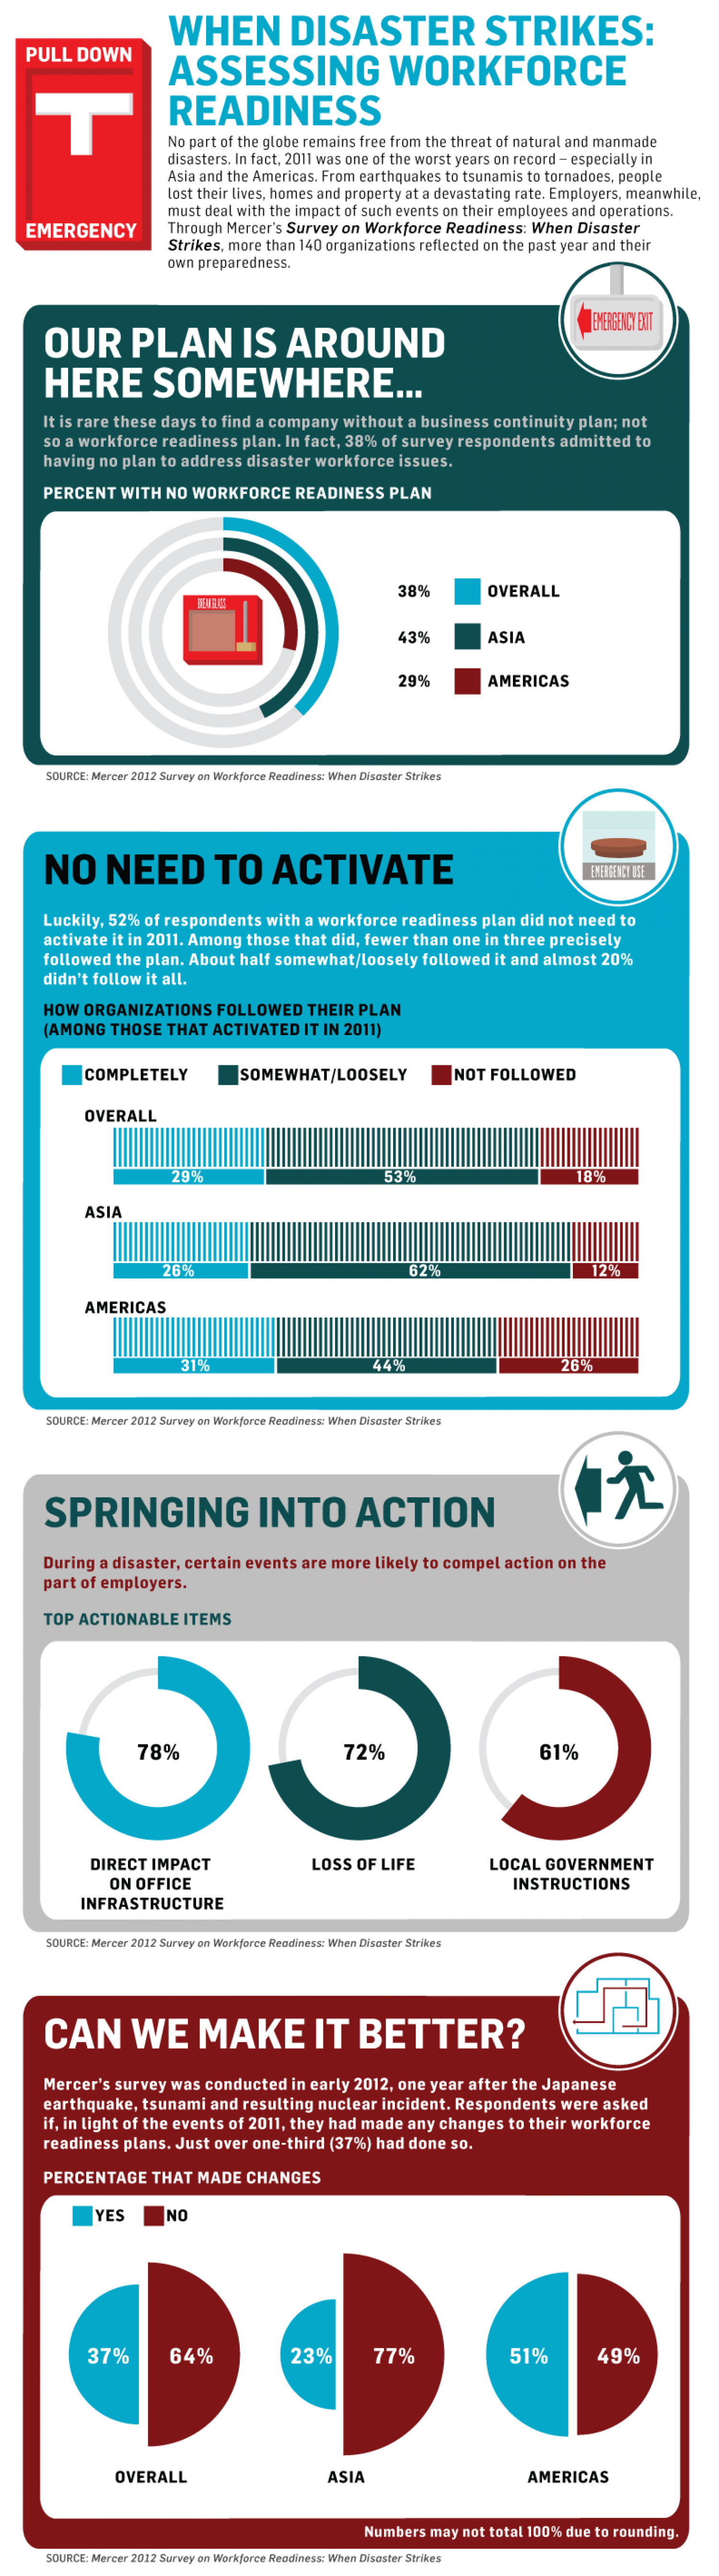 When Disaster Strikes: Assessing Workforce Readiness Around the World Infographic